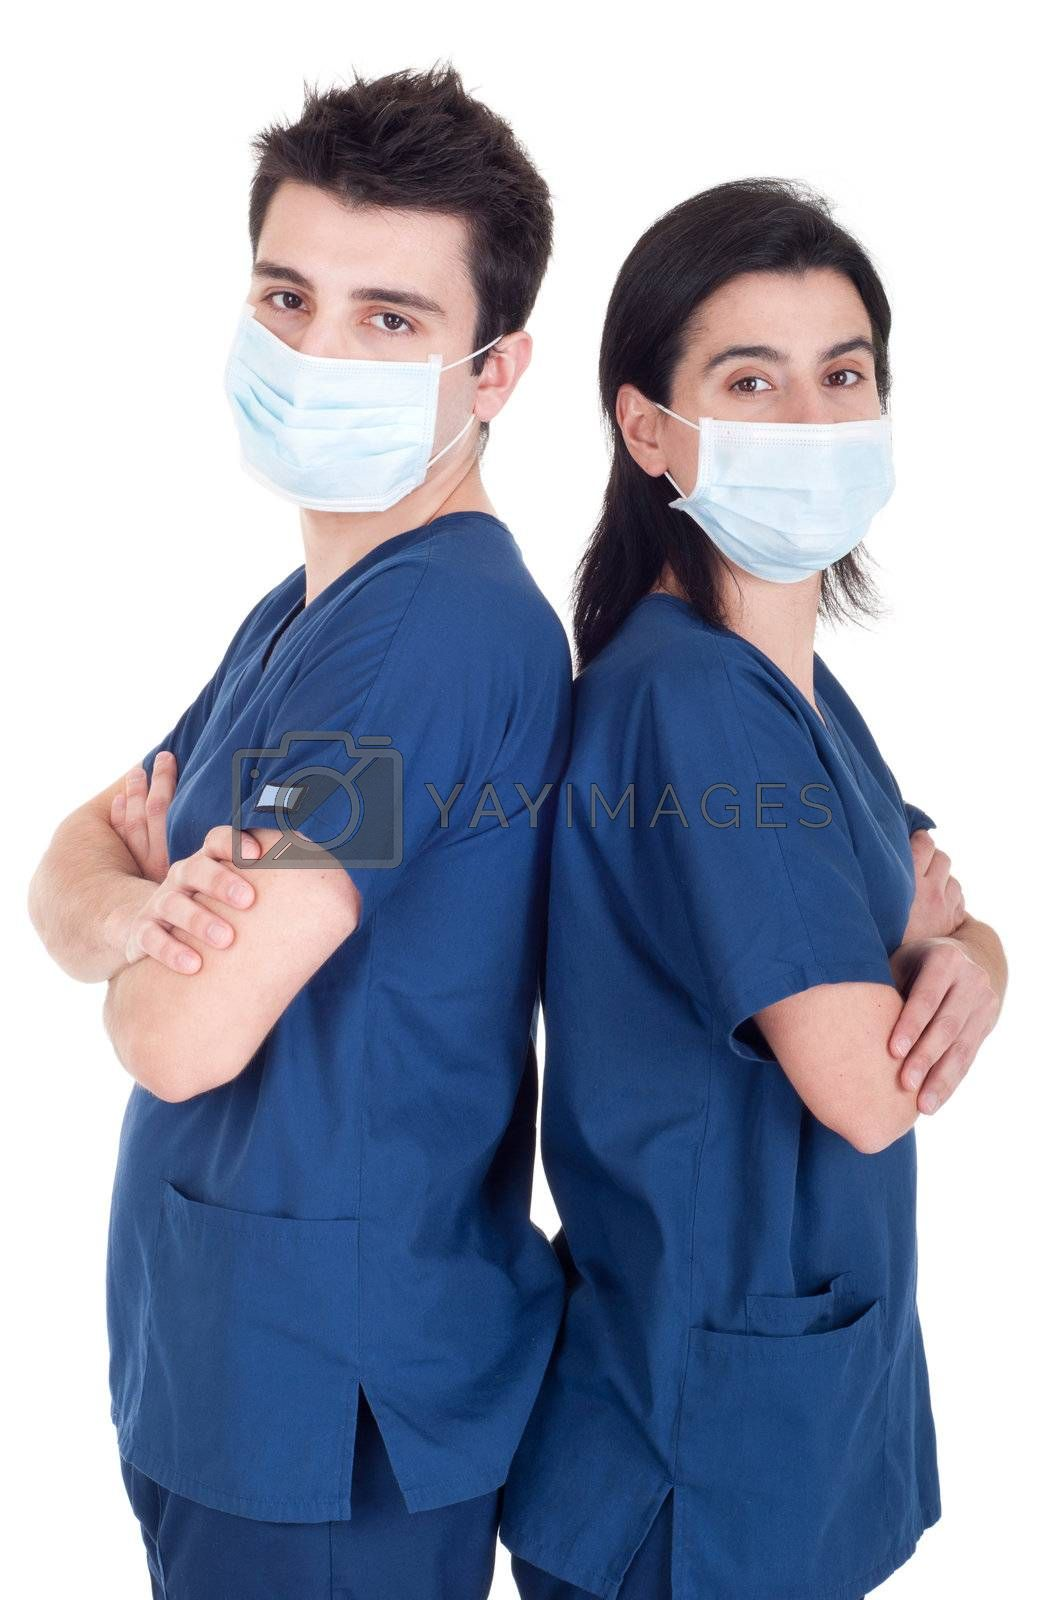 back to back portrait of a team of doctors wearing mask and uniform isolated on white background